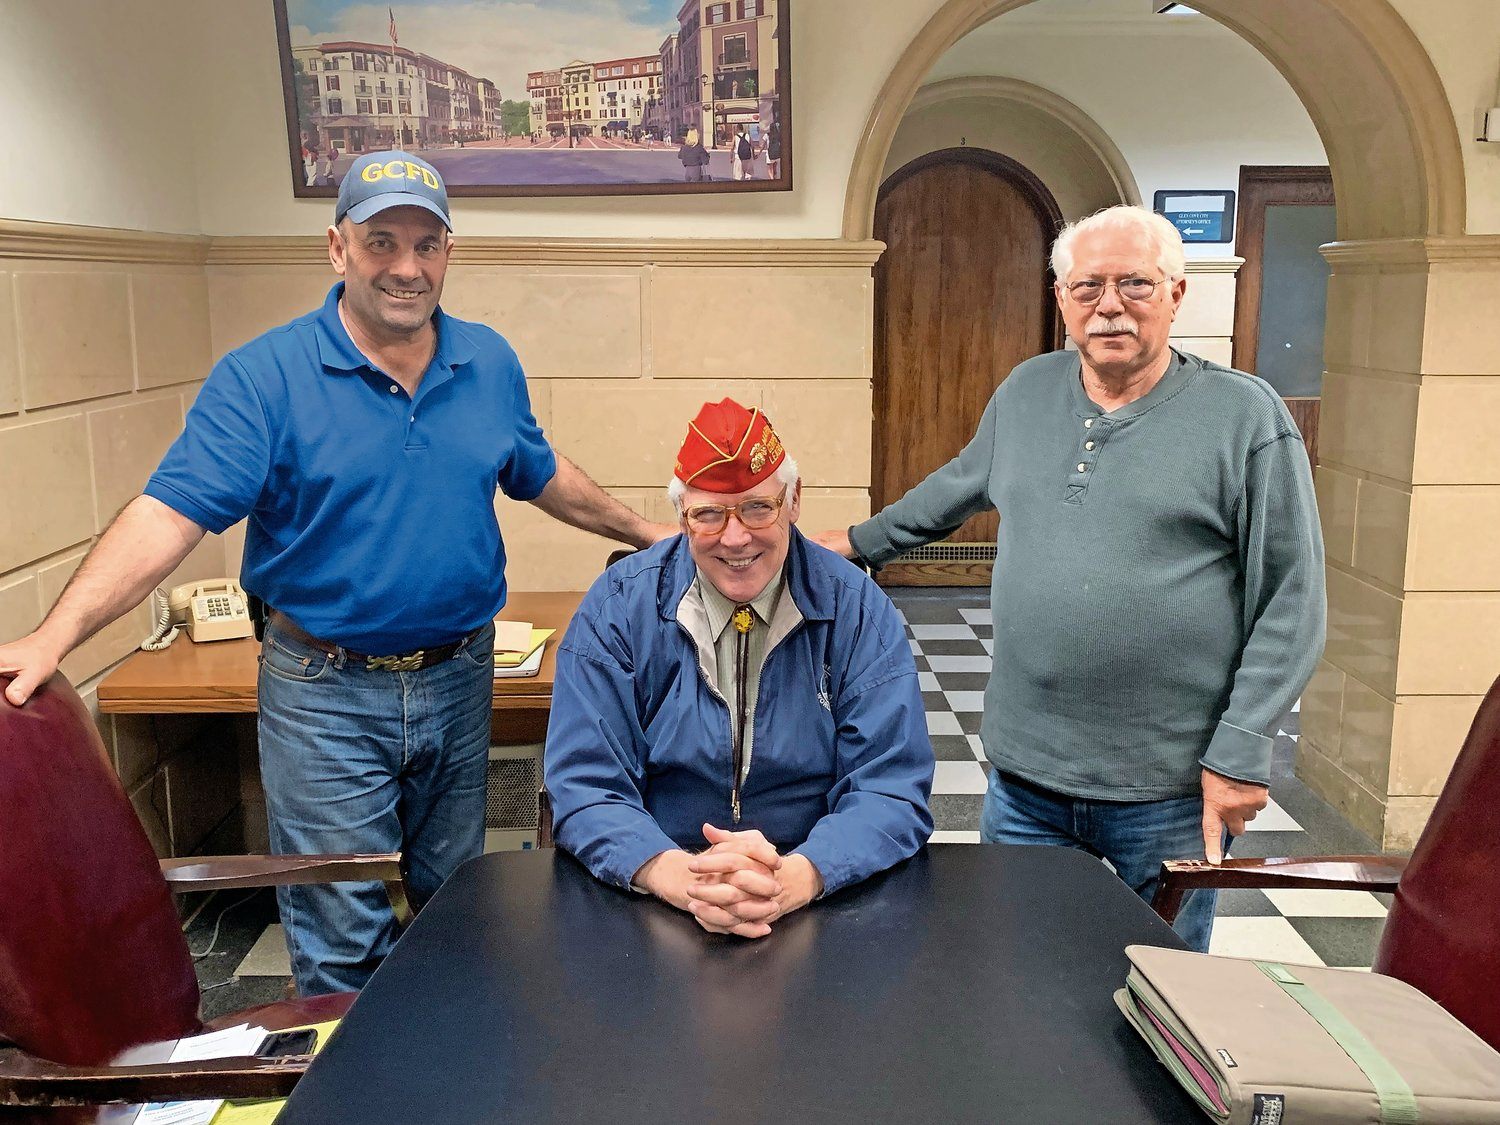 Fred Nielsen, center, the Memorial Day Parade Committee chairman, led a unanimous vote to bring the Road Panthers back into the Memorial Day parade, thanks in part to the advocacy of Road Panther and parade committee member Pete Prudente, left, and Tony Contorino, the Road Panther president.